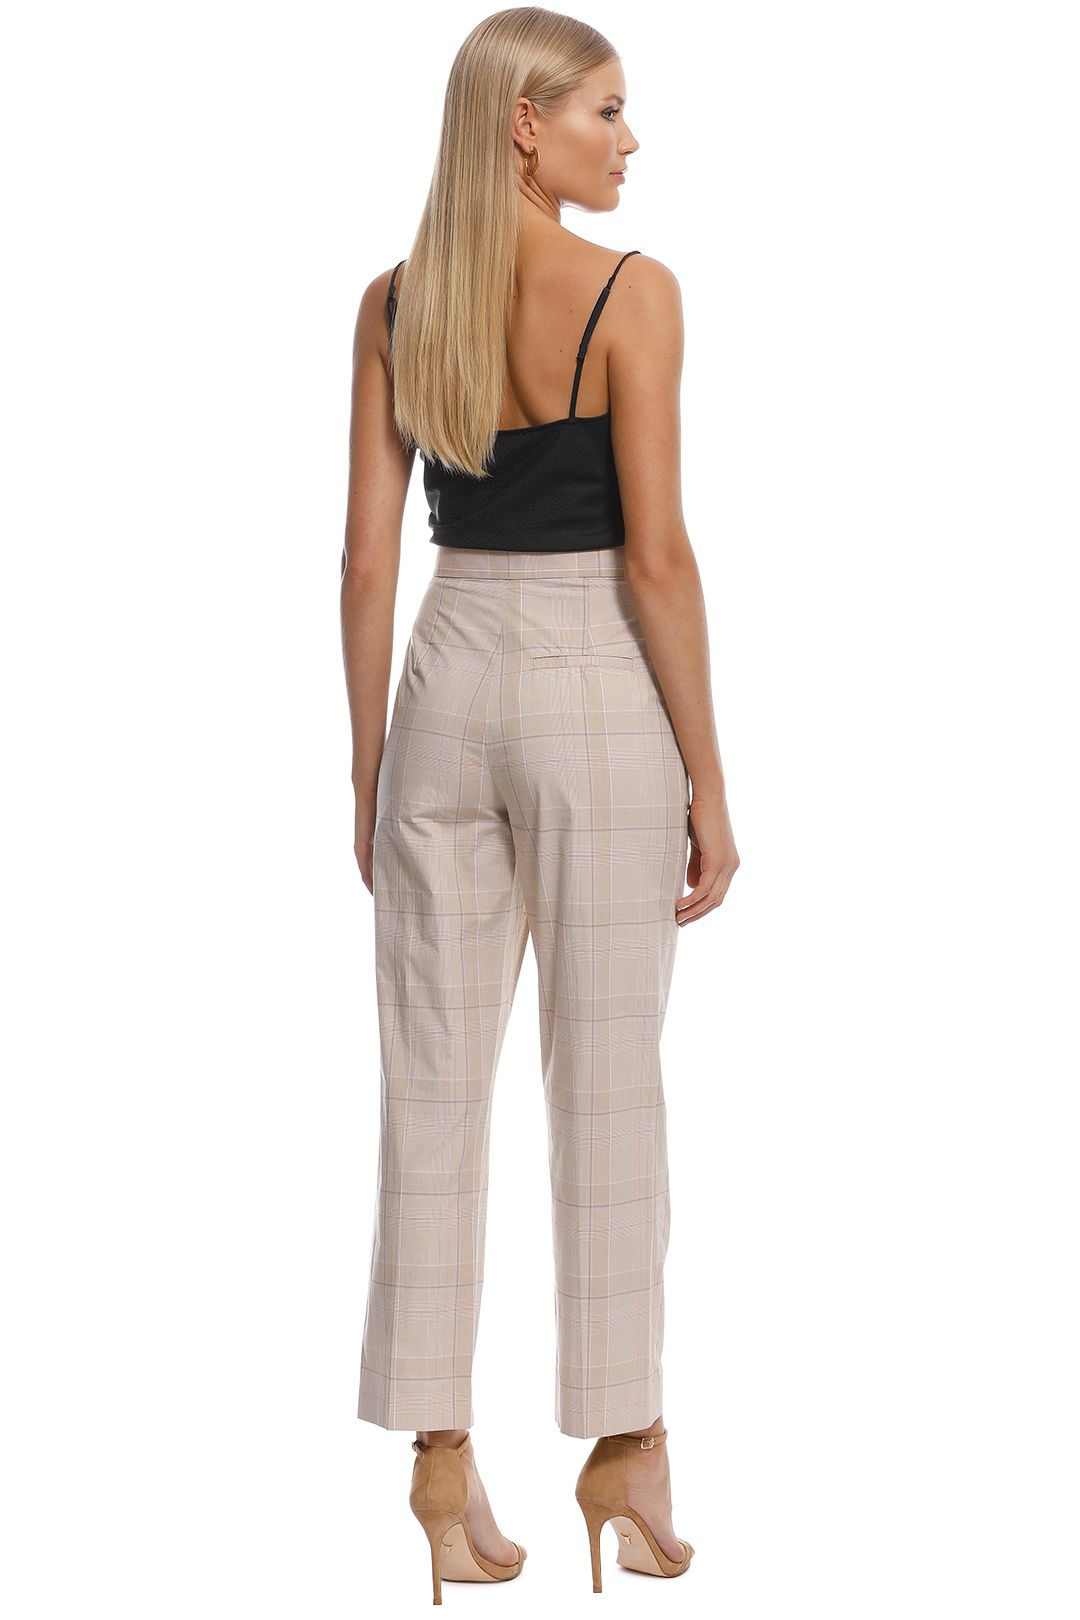 Scanlan Theodore - Check Slim Fit Trouser - Frappe - Back